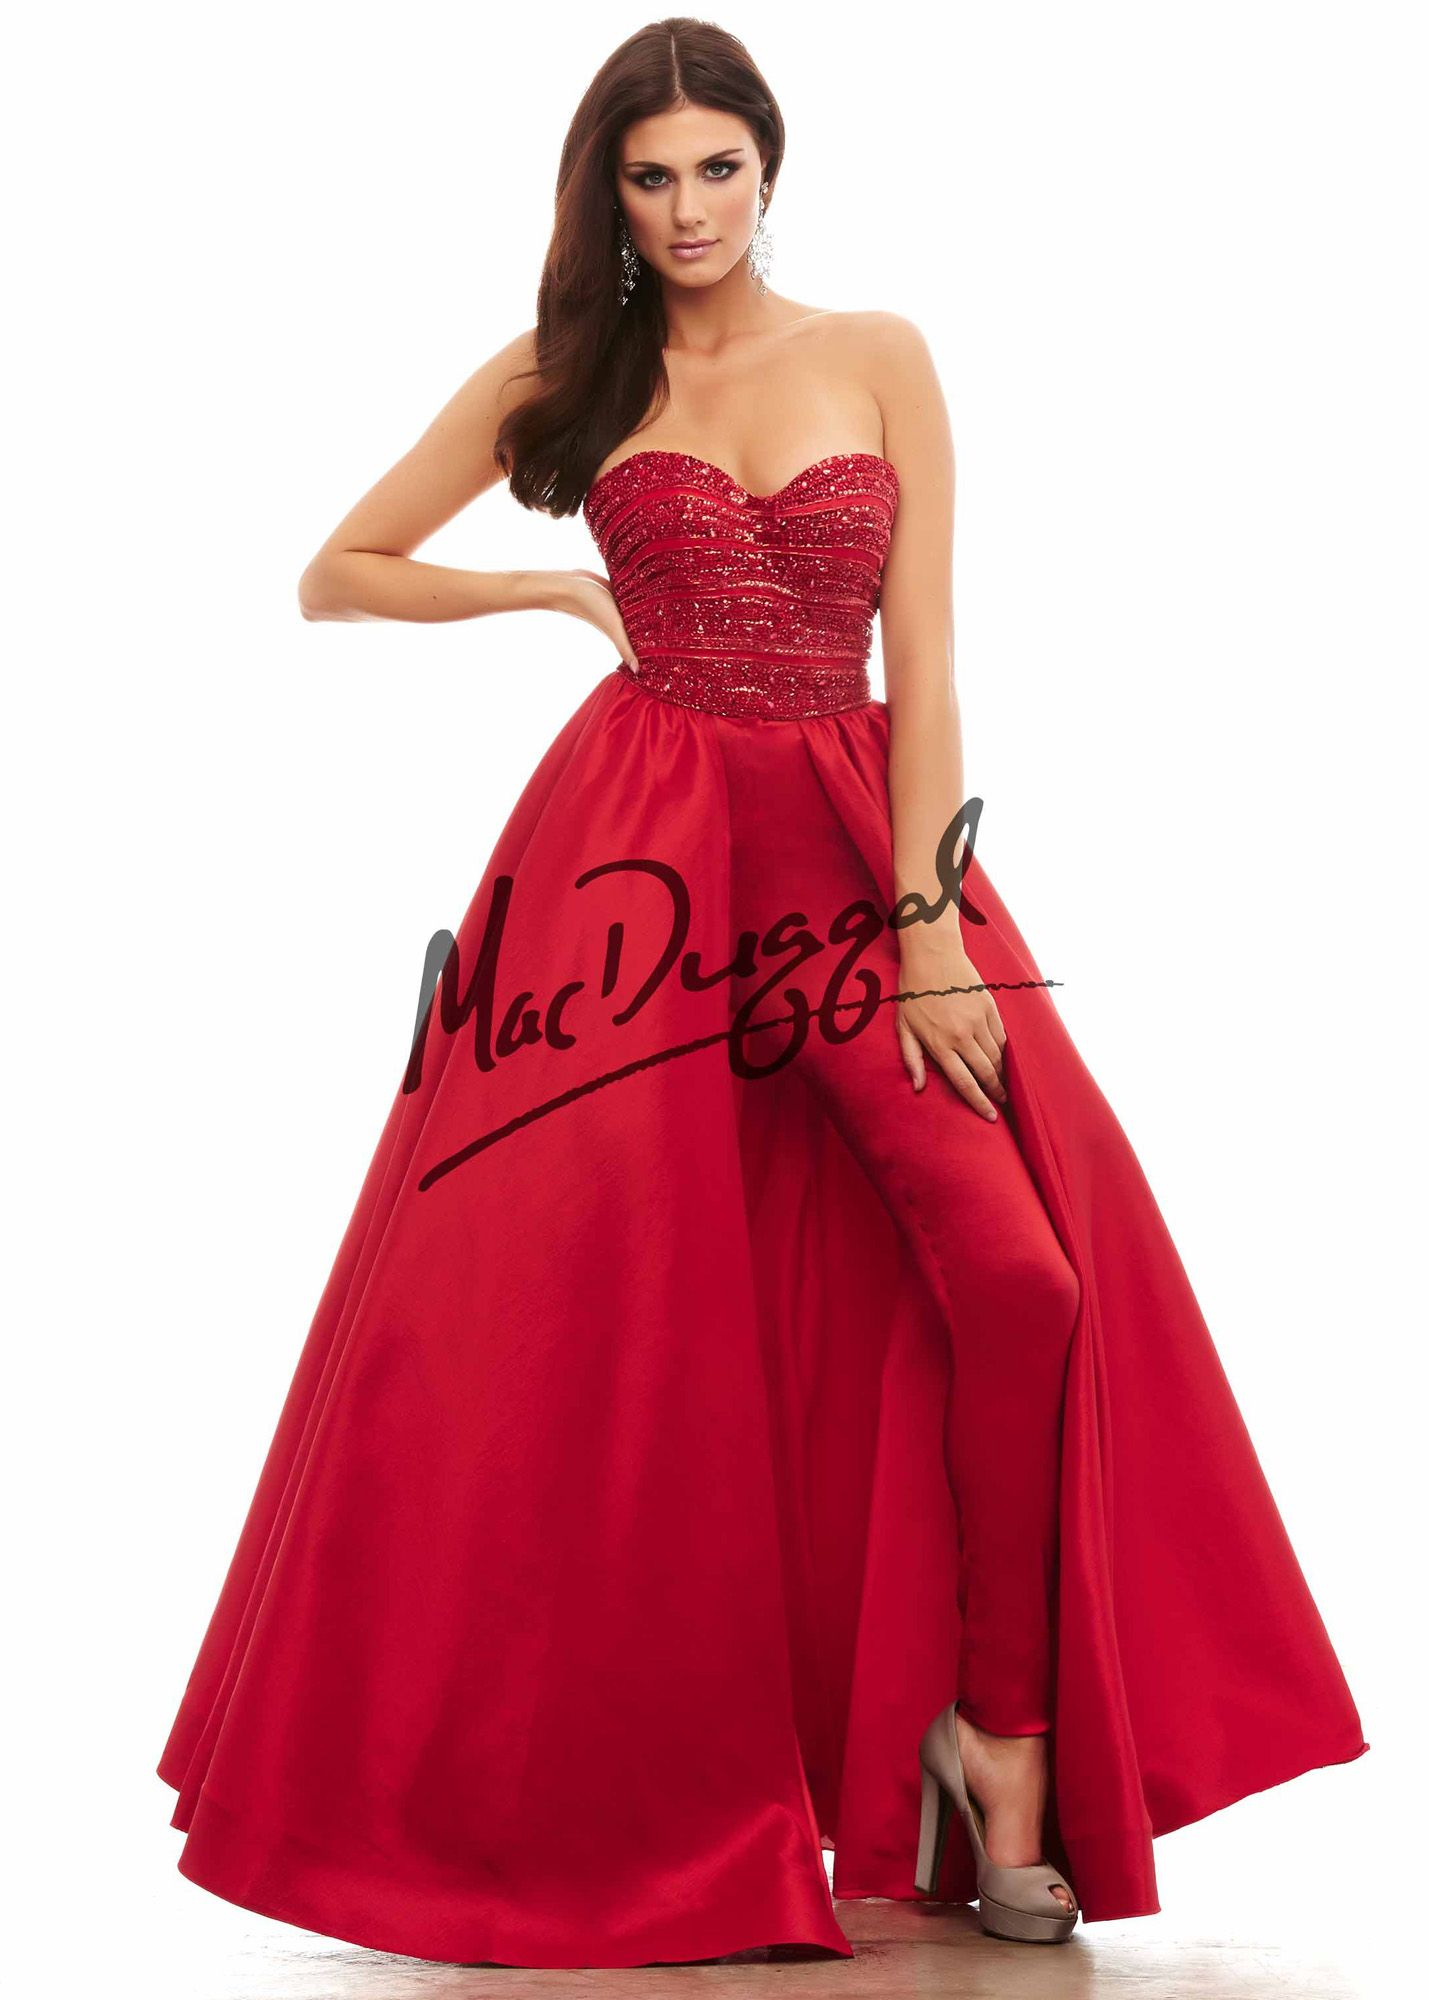 59c2fa91893 Cassandra Stone by Mac Duggal 48276 Sexy Strapless Hot Pants ...